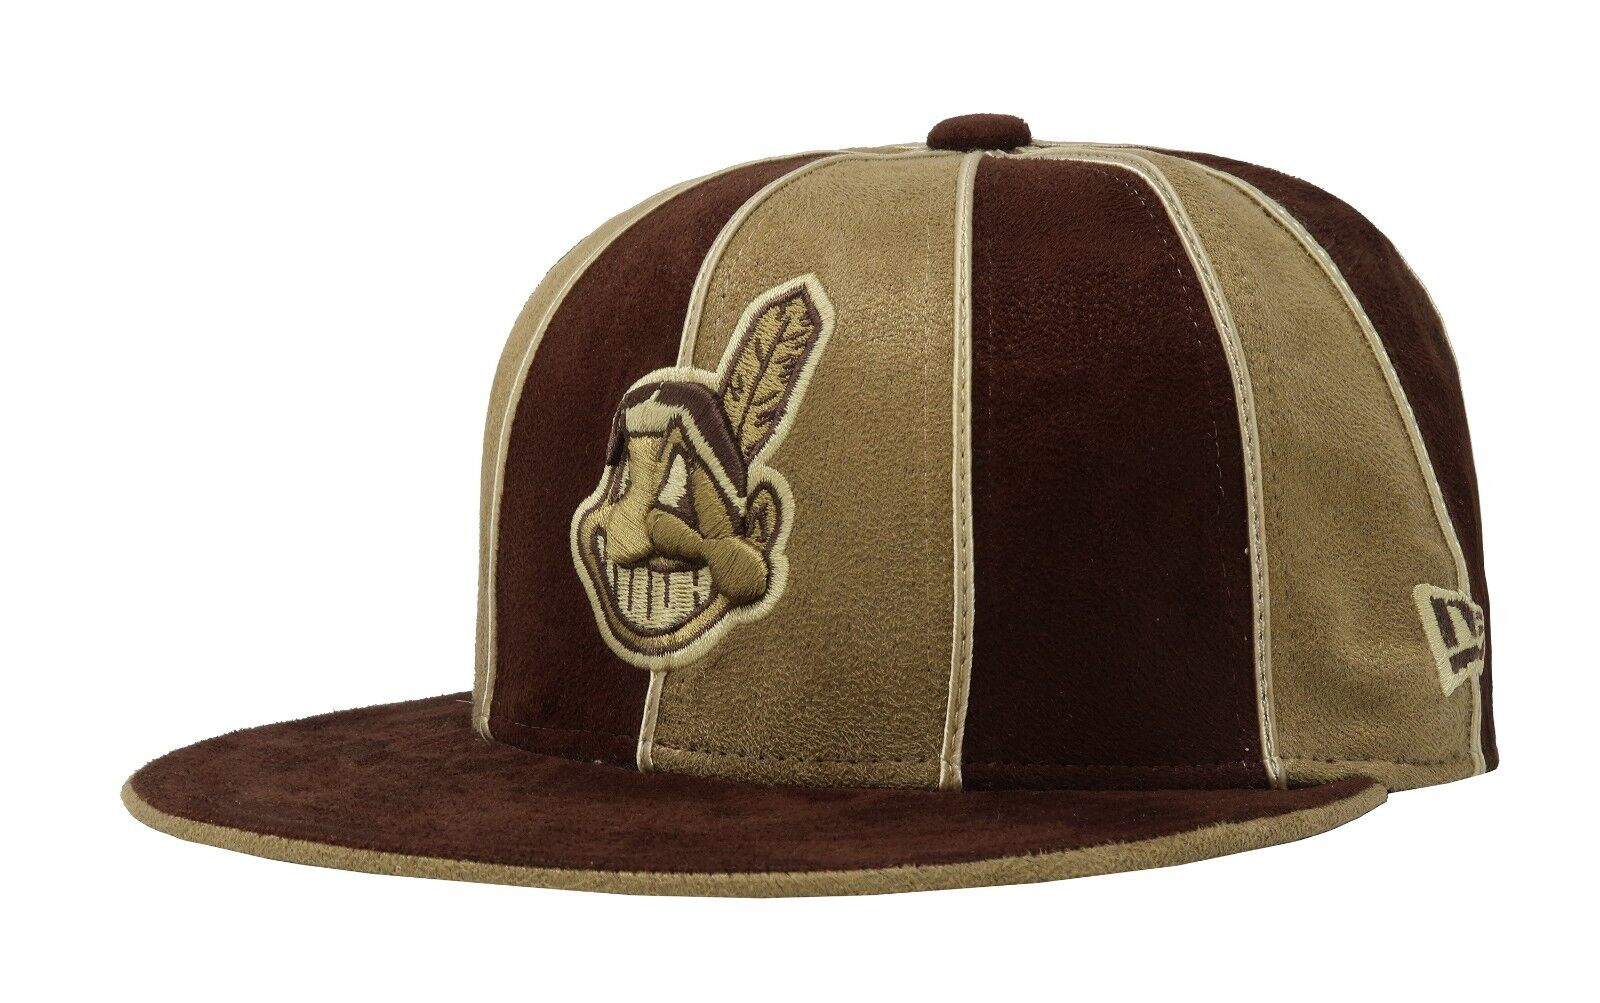 new arrival 3ce0d 8259a ... wholesale new 12 era 59fifty hat mlb cleveland indians mens womens 12  new pack brown fitted